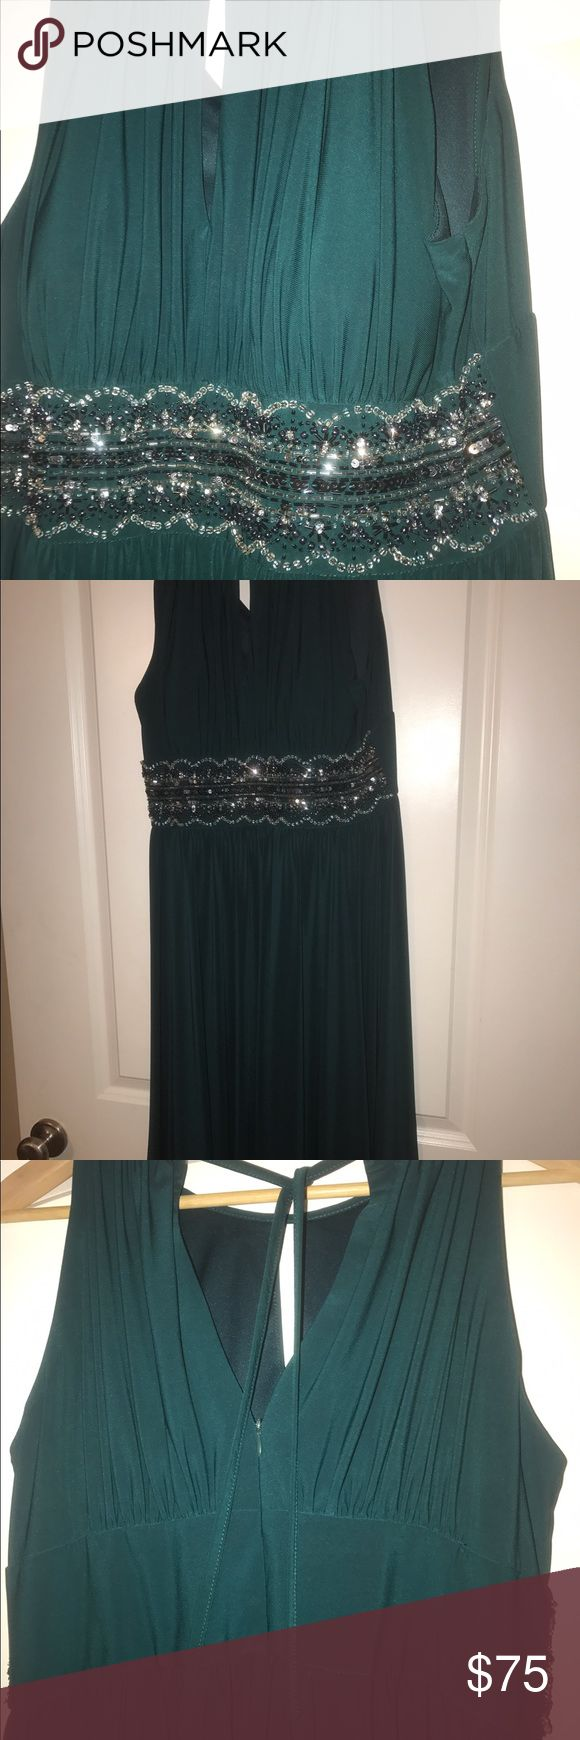 Emerald Christmas Cocktail Dress GORGEOUS keyhole cocktail dress with rhinestone mid. Has cups inside and is fully lined. This dress is one of a kind! Wore it on formal night on a cruise and was told by multiple strangers it was absolutely stunning. Comfortable to wear! I love offers ❤️❤️❤️❤️❤️ Dresses